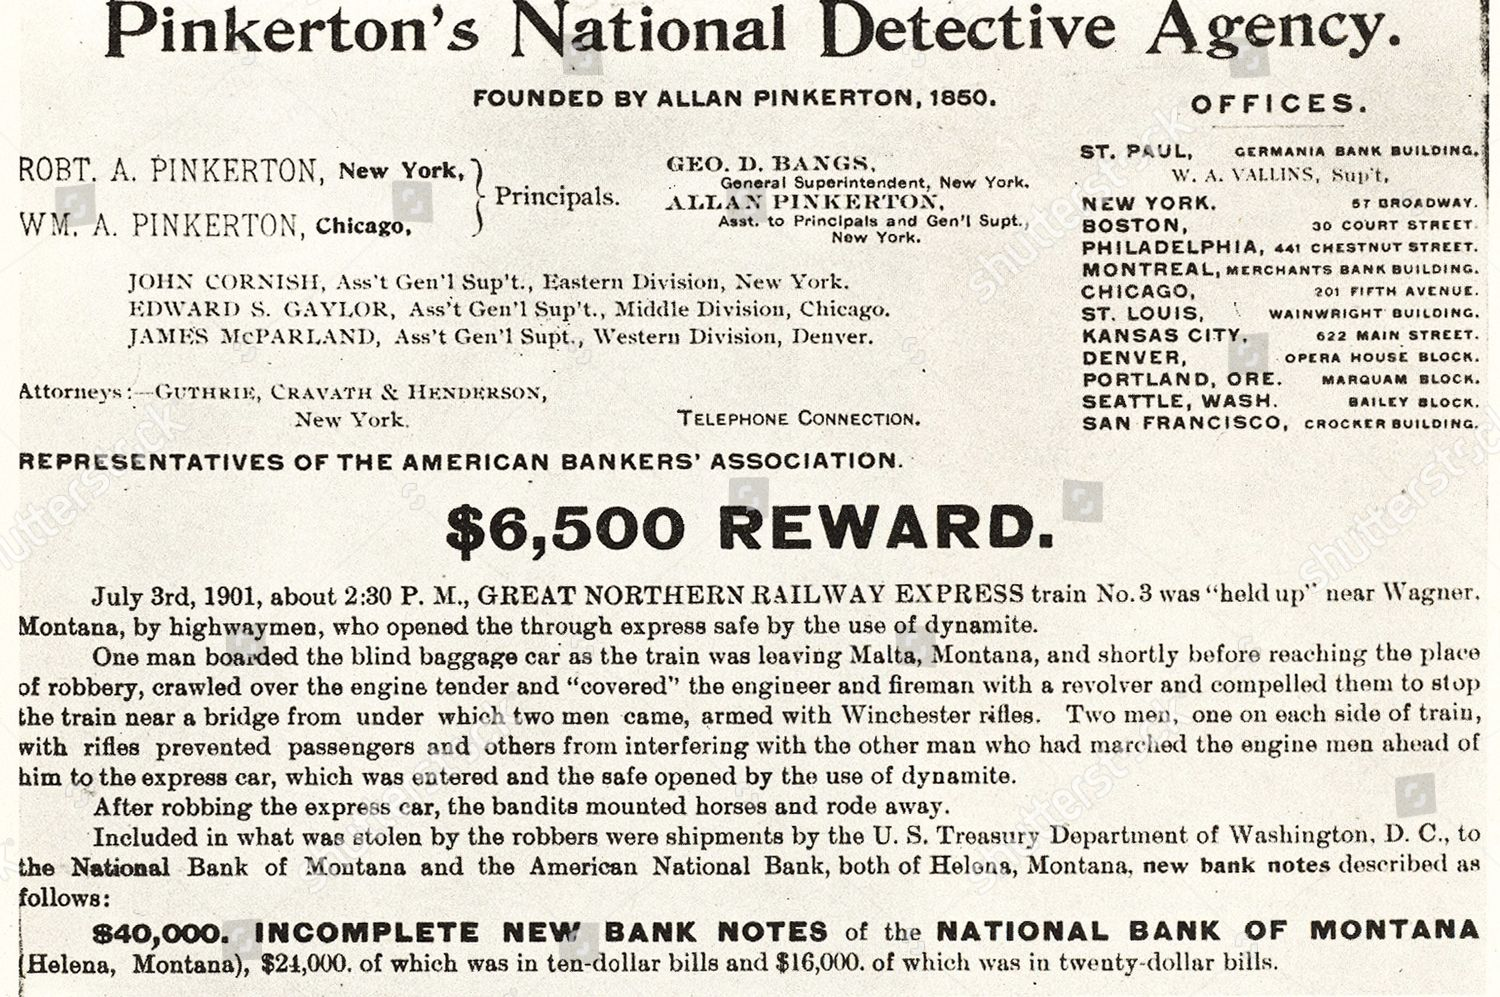 Pinkertons National Detective Agency American private